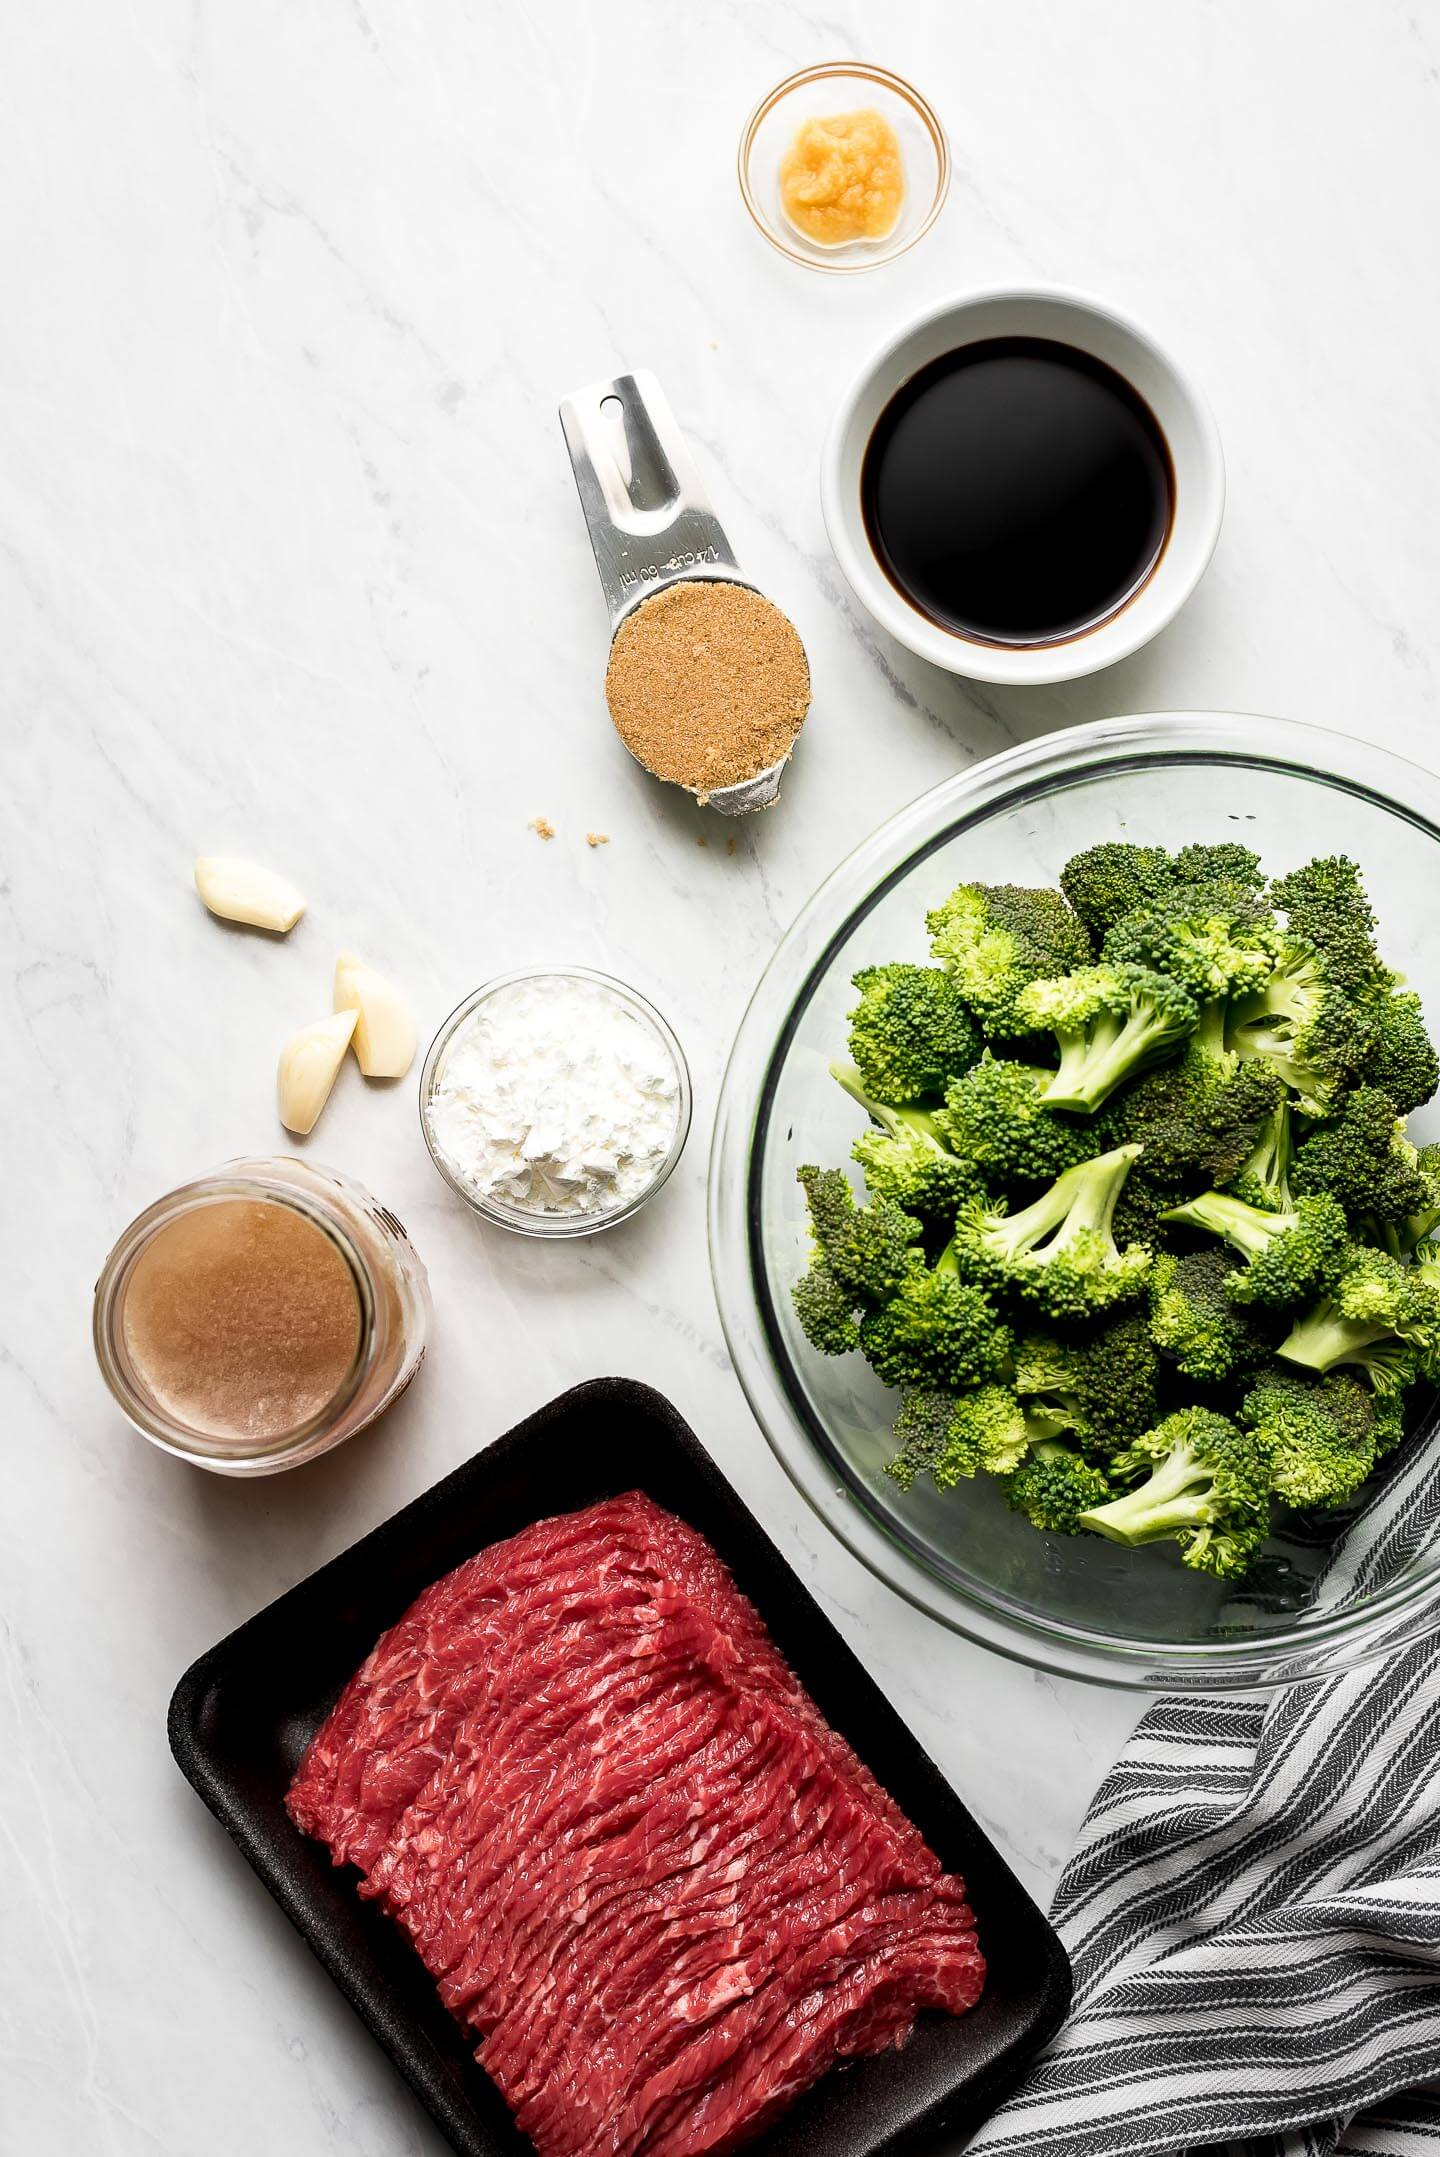 Ingredients on a marble surface- soy sauce, brown sugar, cornstarch, garlic, beef broth, broccoli, and thin cut flank steak.